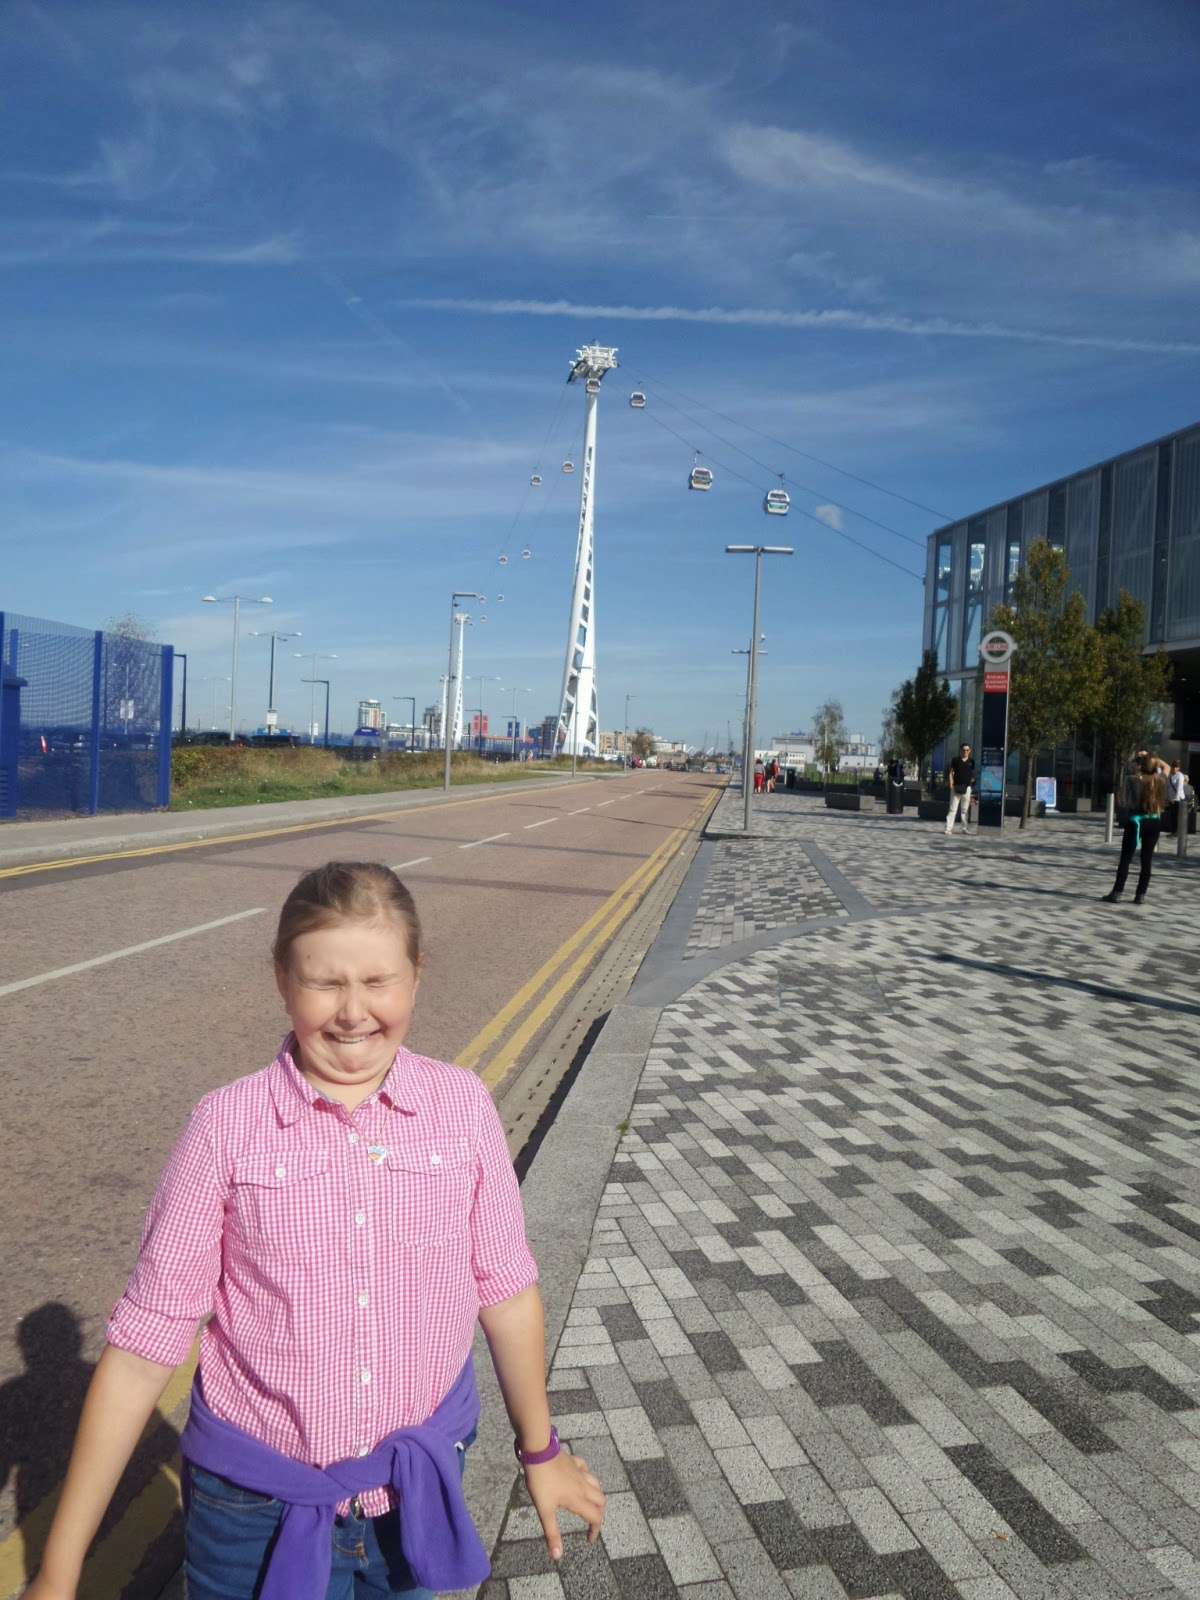 Top Ender worried about going on the Emirates Air Line